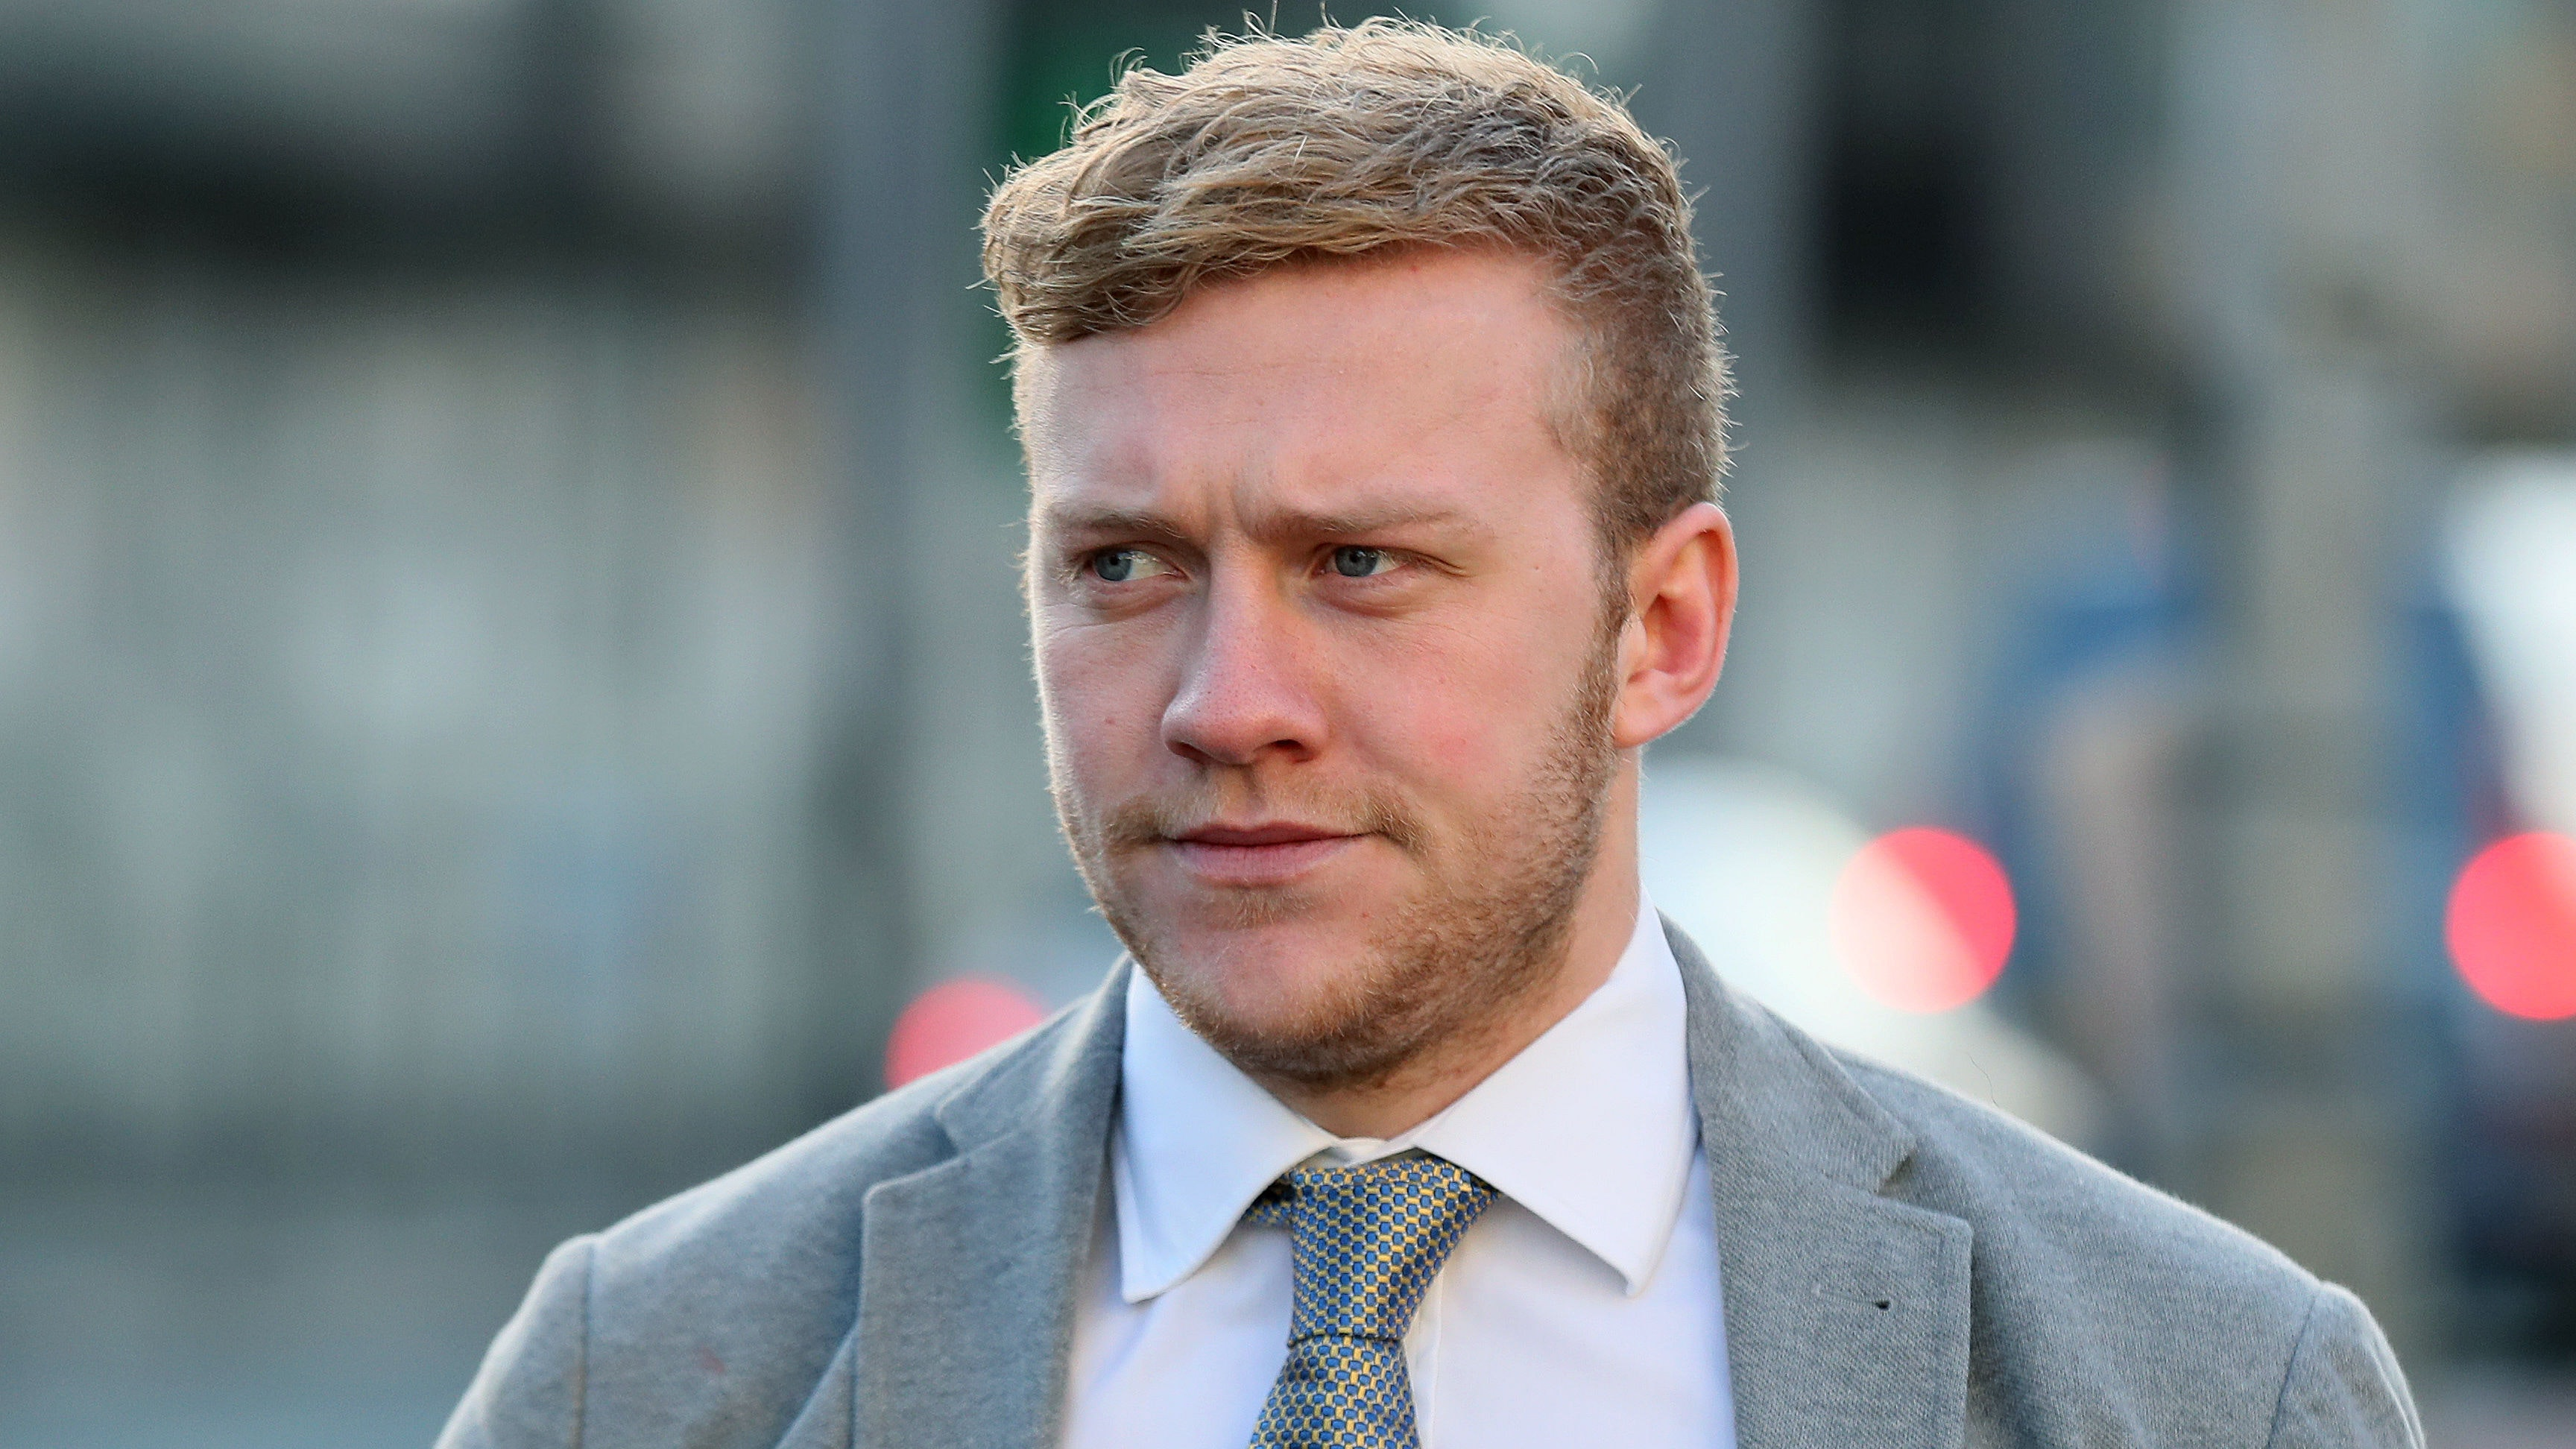 Rugby rape trial: Woman denies 'lying about being raped'